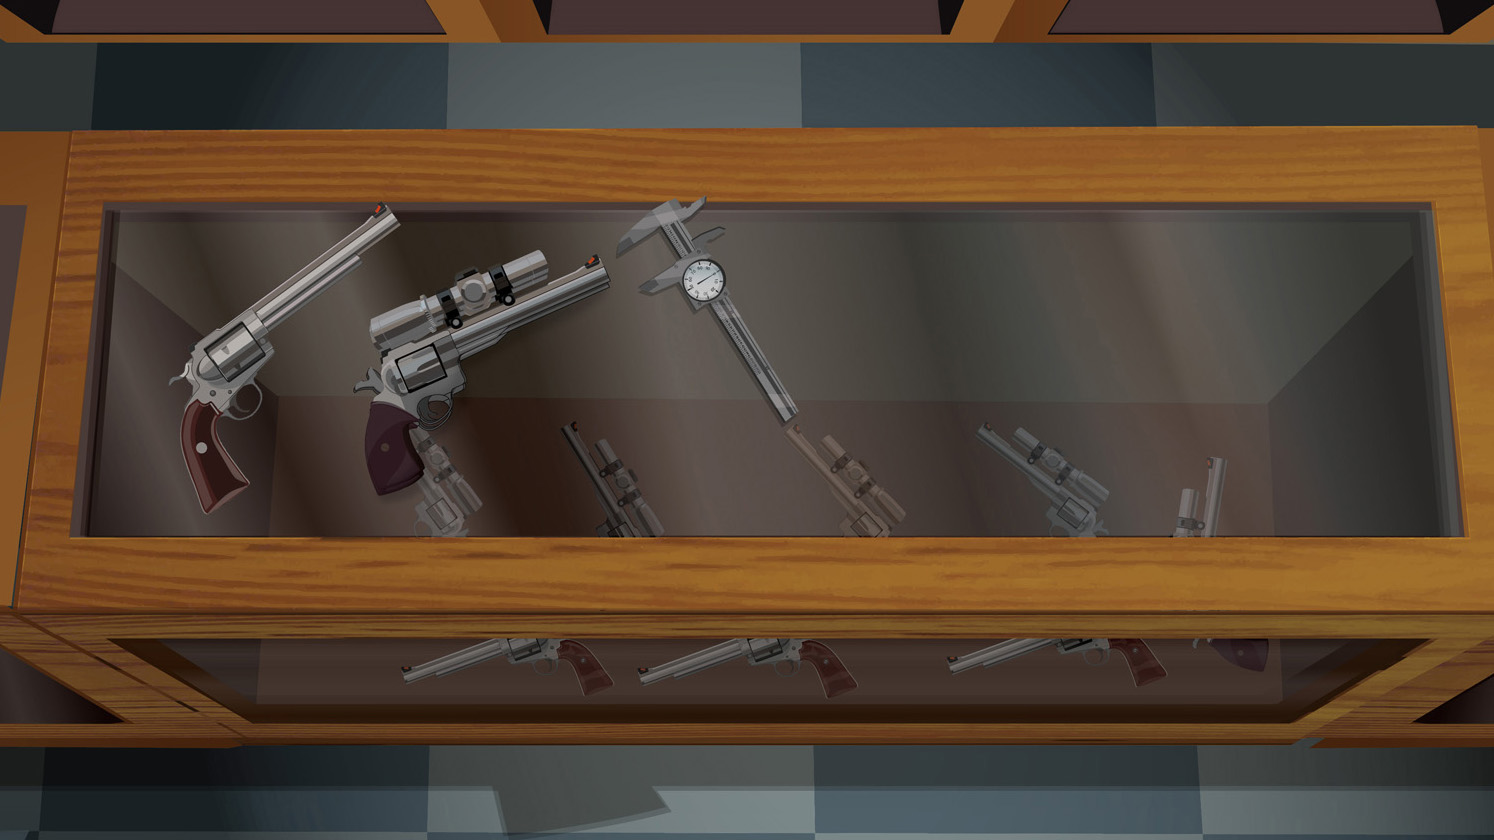 Illustration of a retail gun counter with  two handguns and a tool for measuring bore diameter on top.